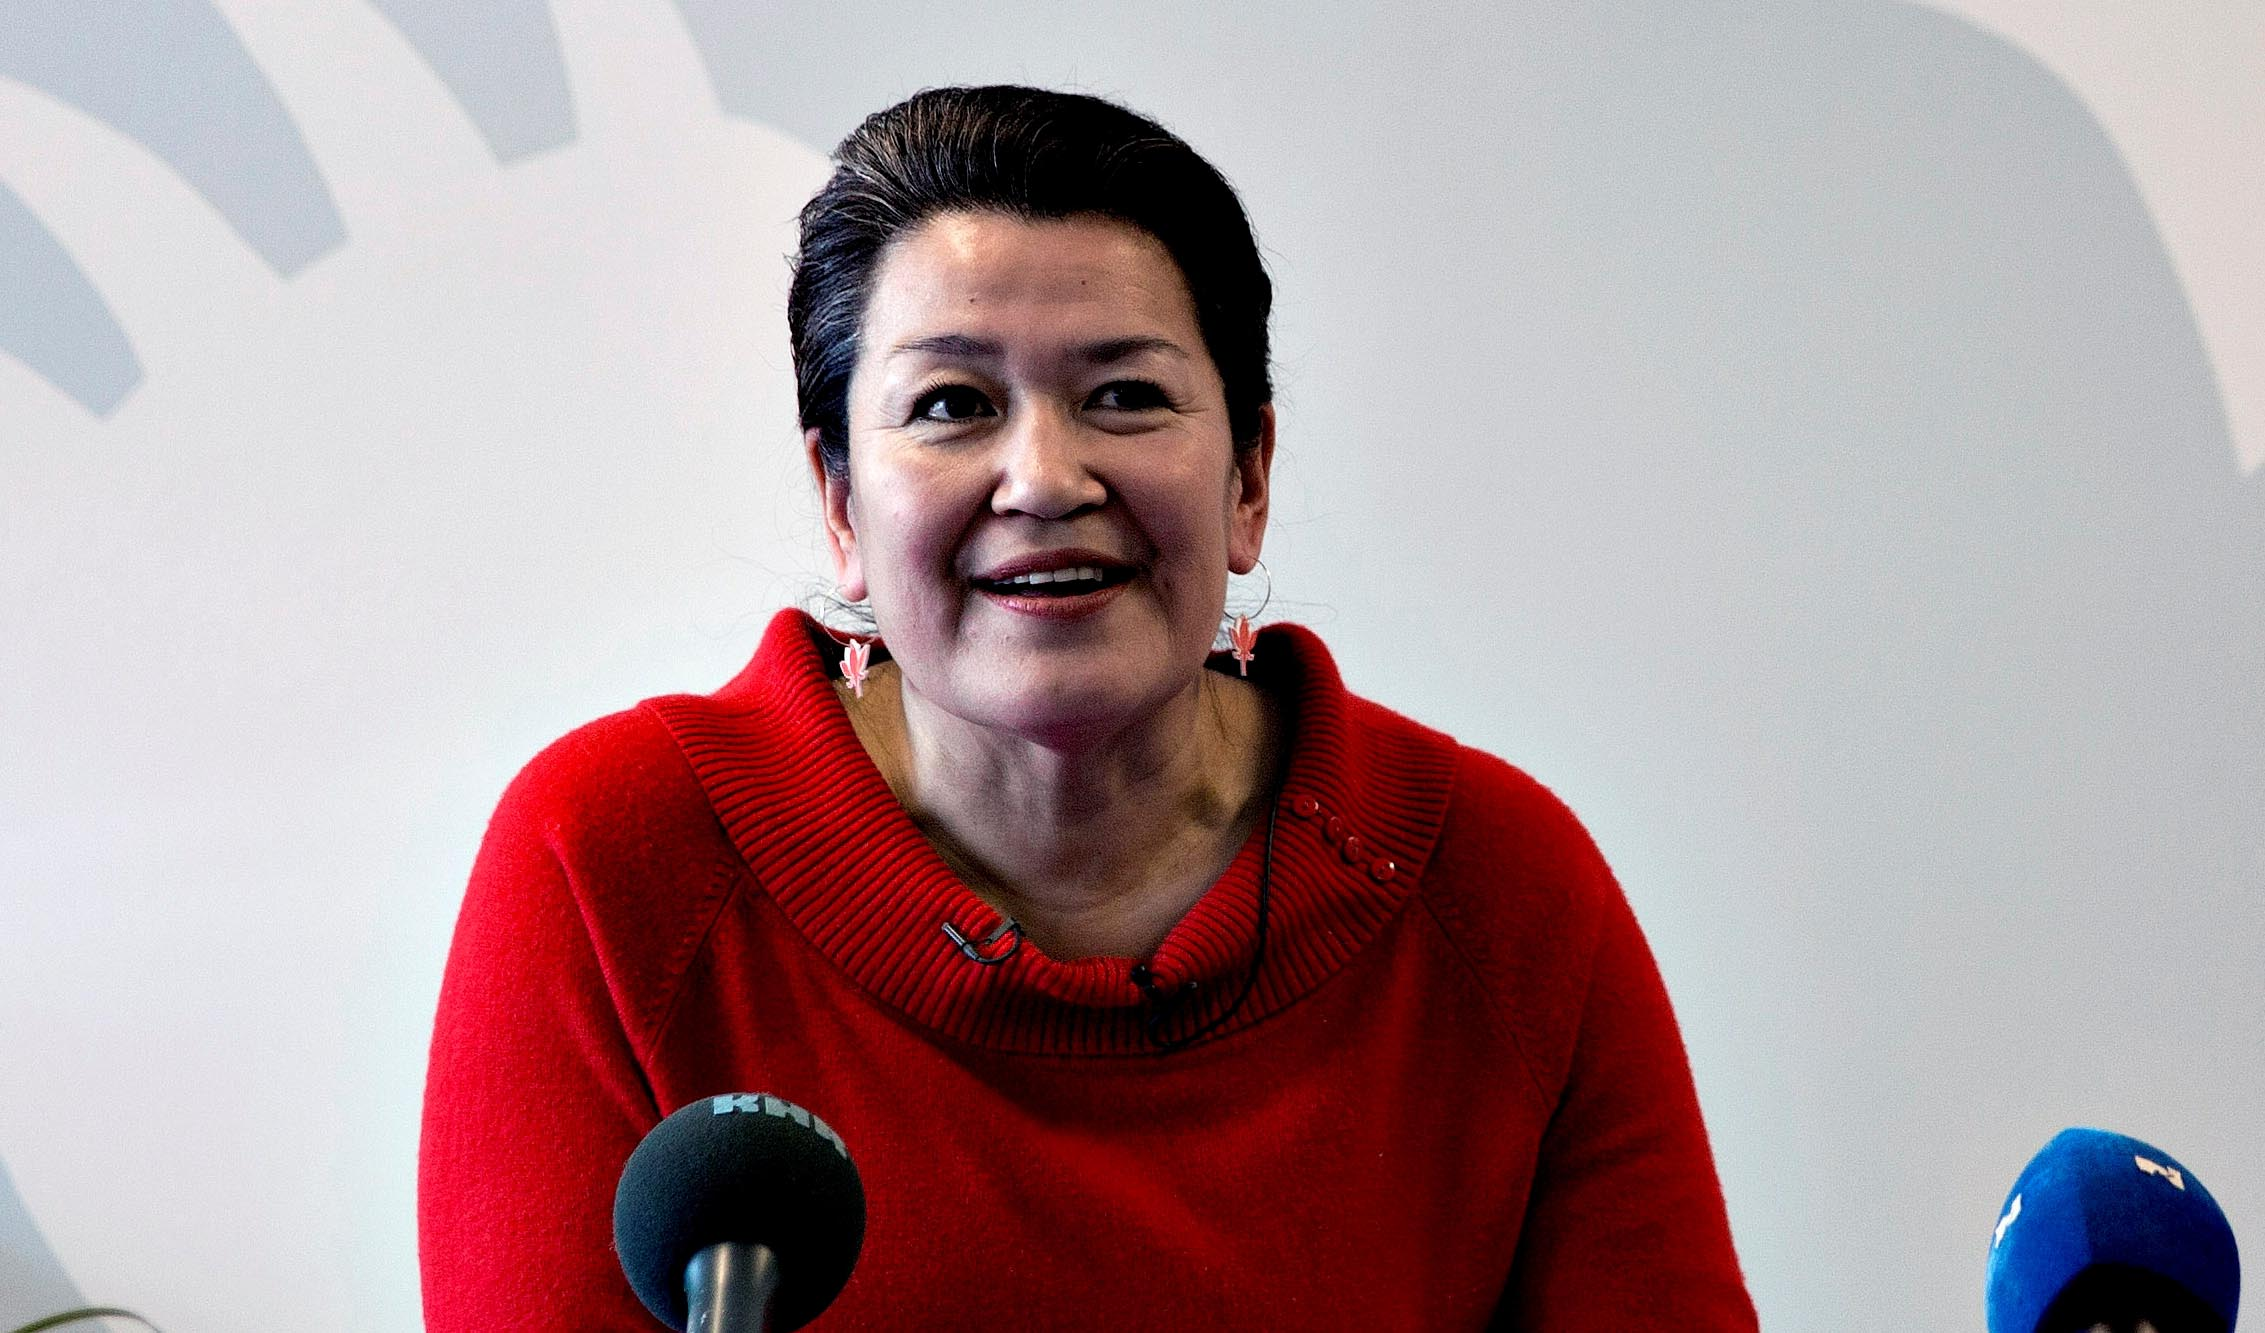 Greenland's new leader inspired by Mandela